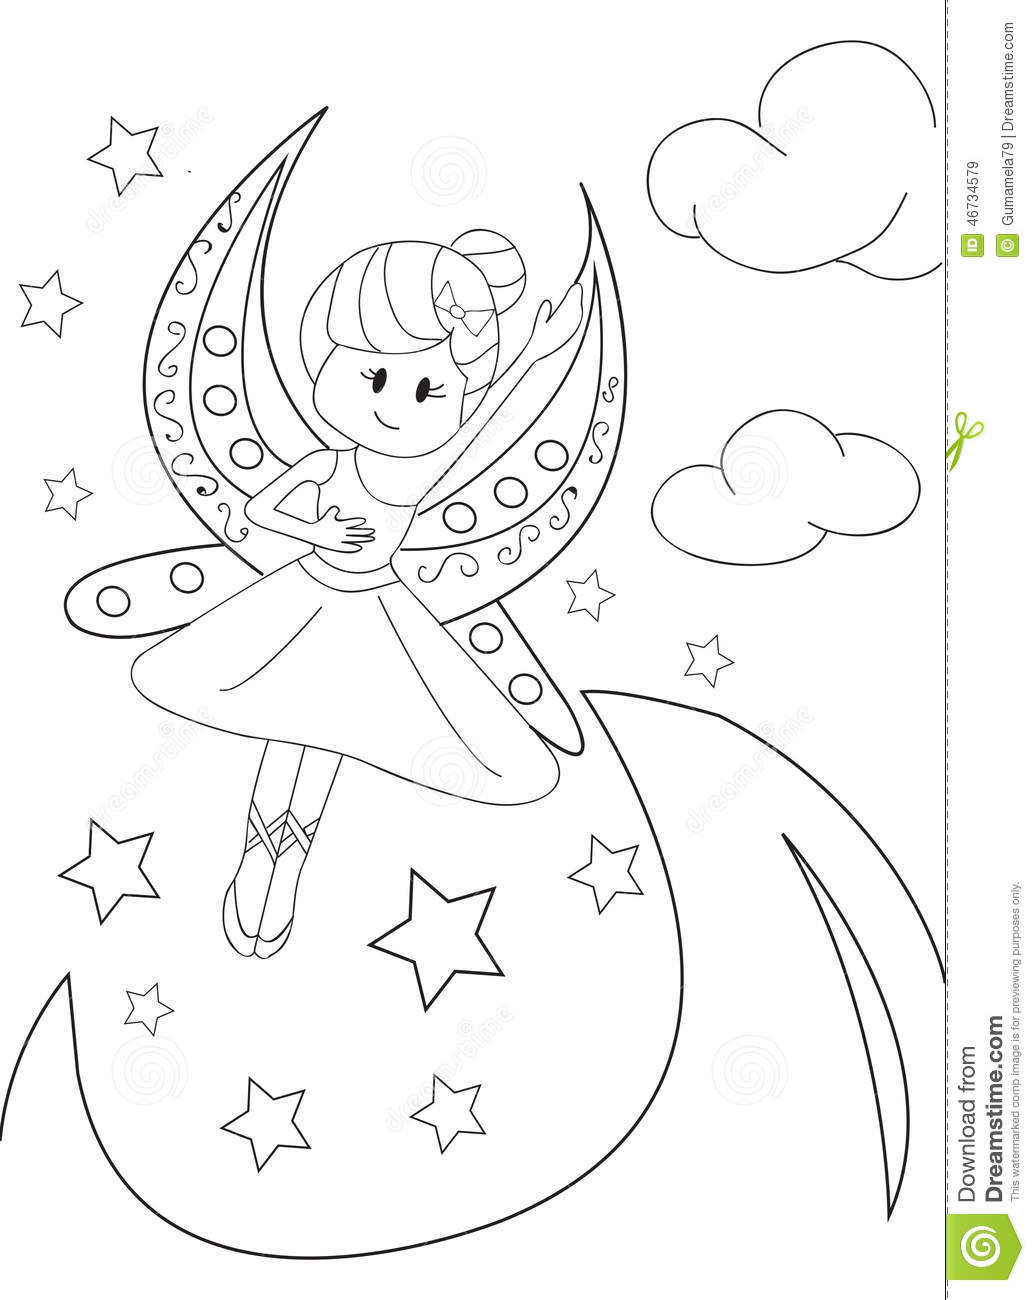 hand drawn coloring page of a moon fairy stock illustration